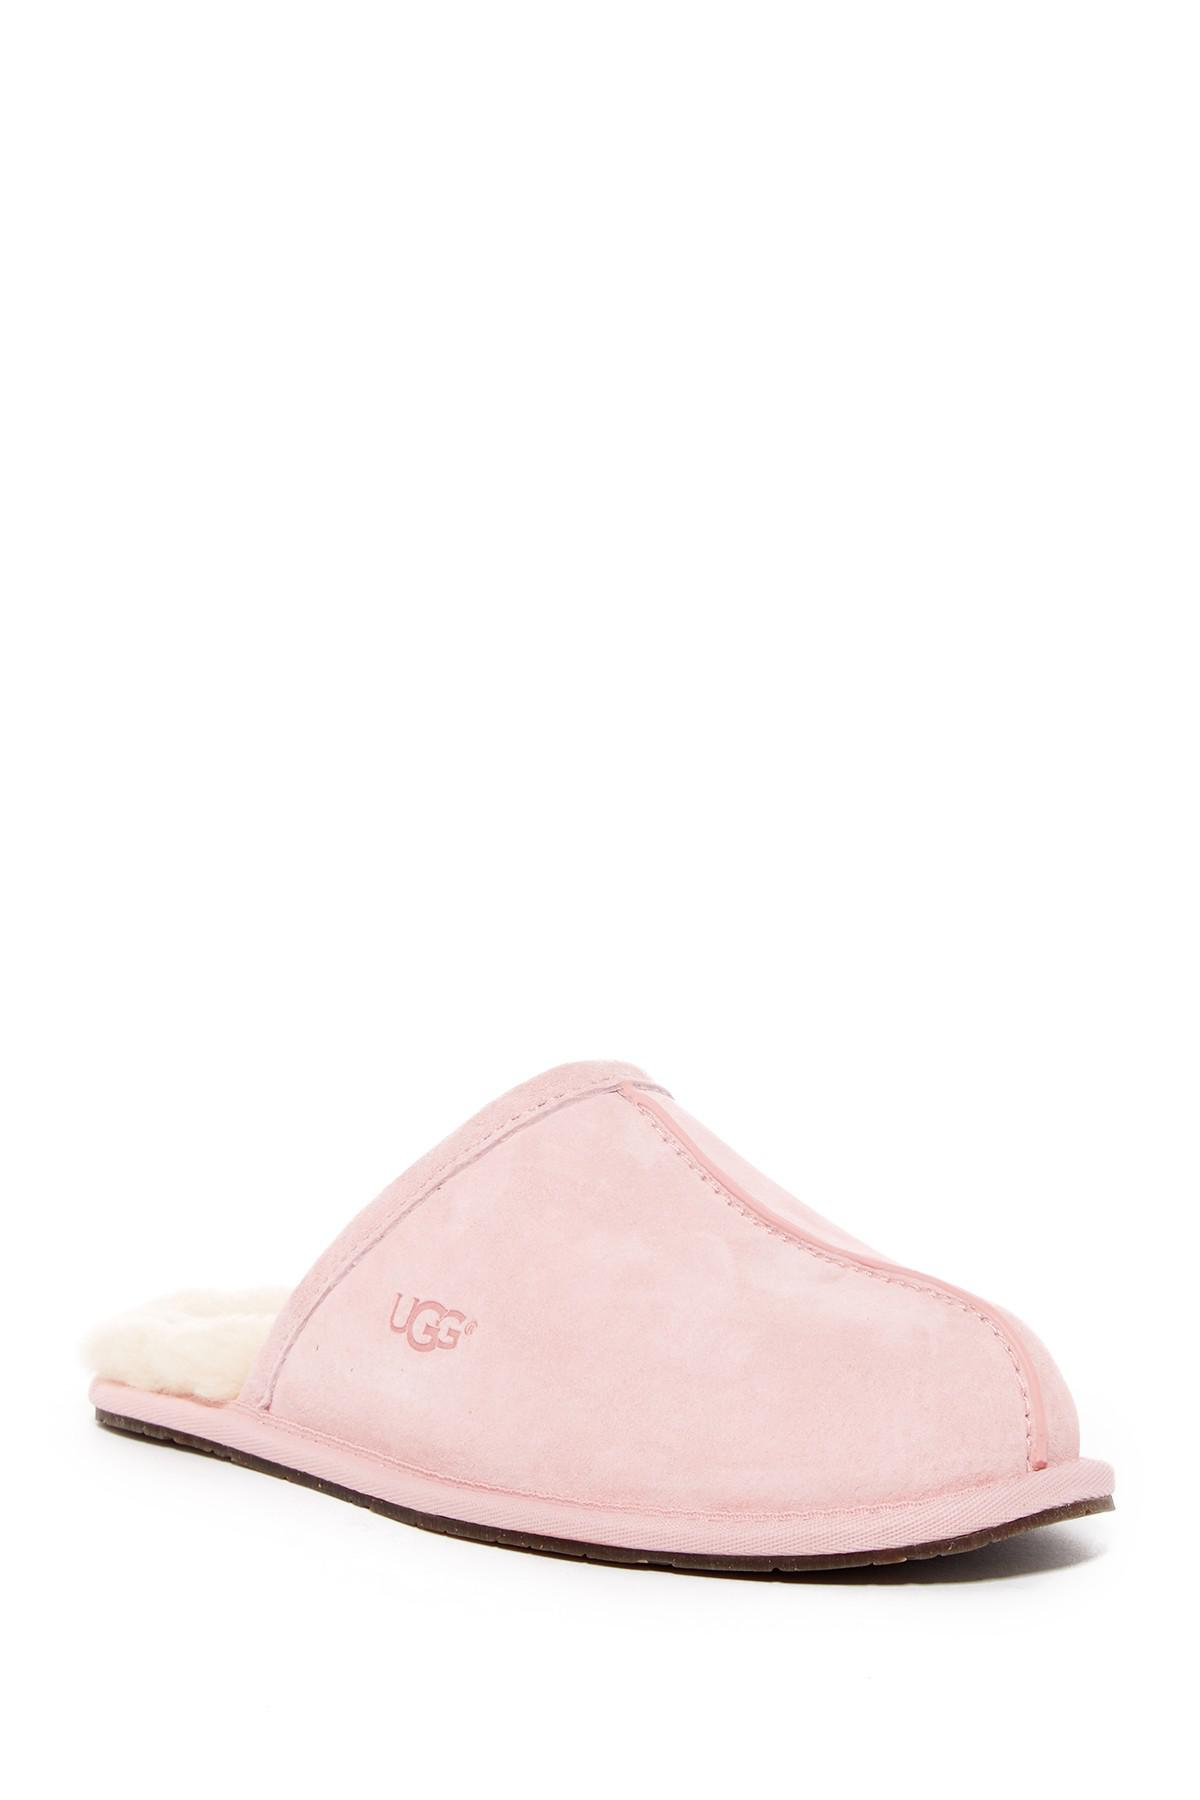 Lyst - UGG Pearle Genuine Shearling Lined Slipper in Pink 4a4622cd2